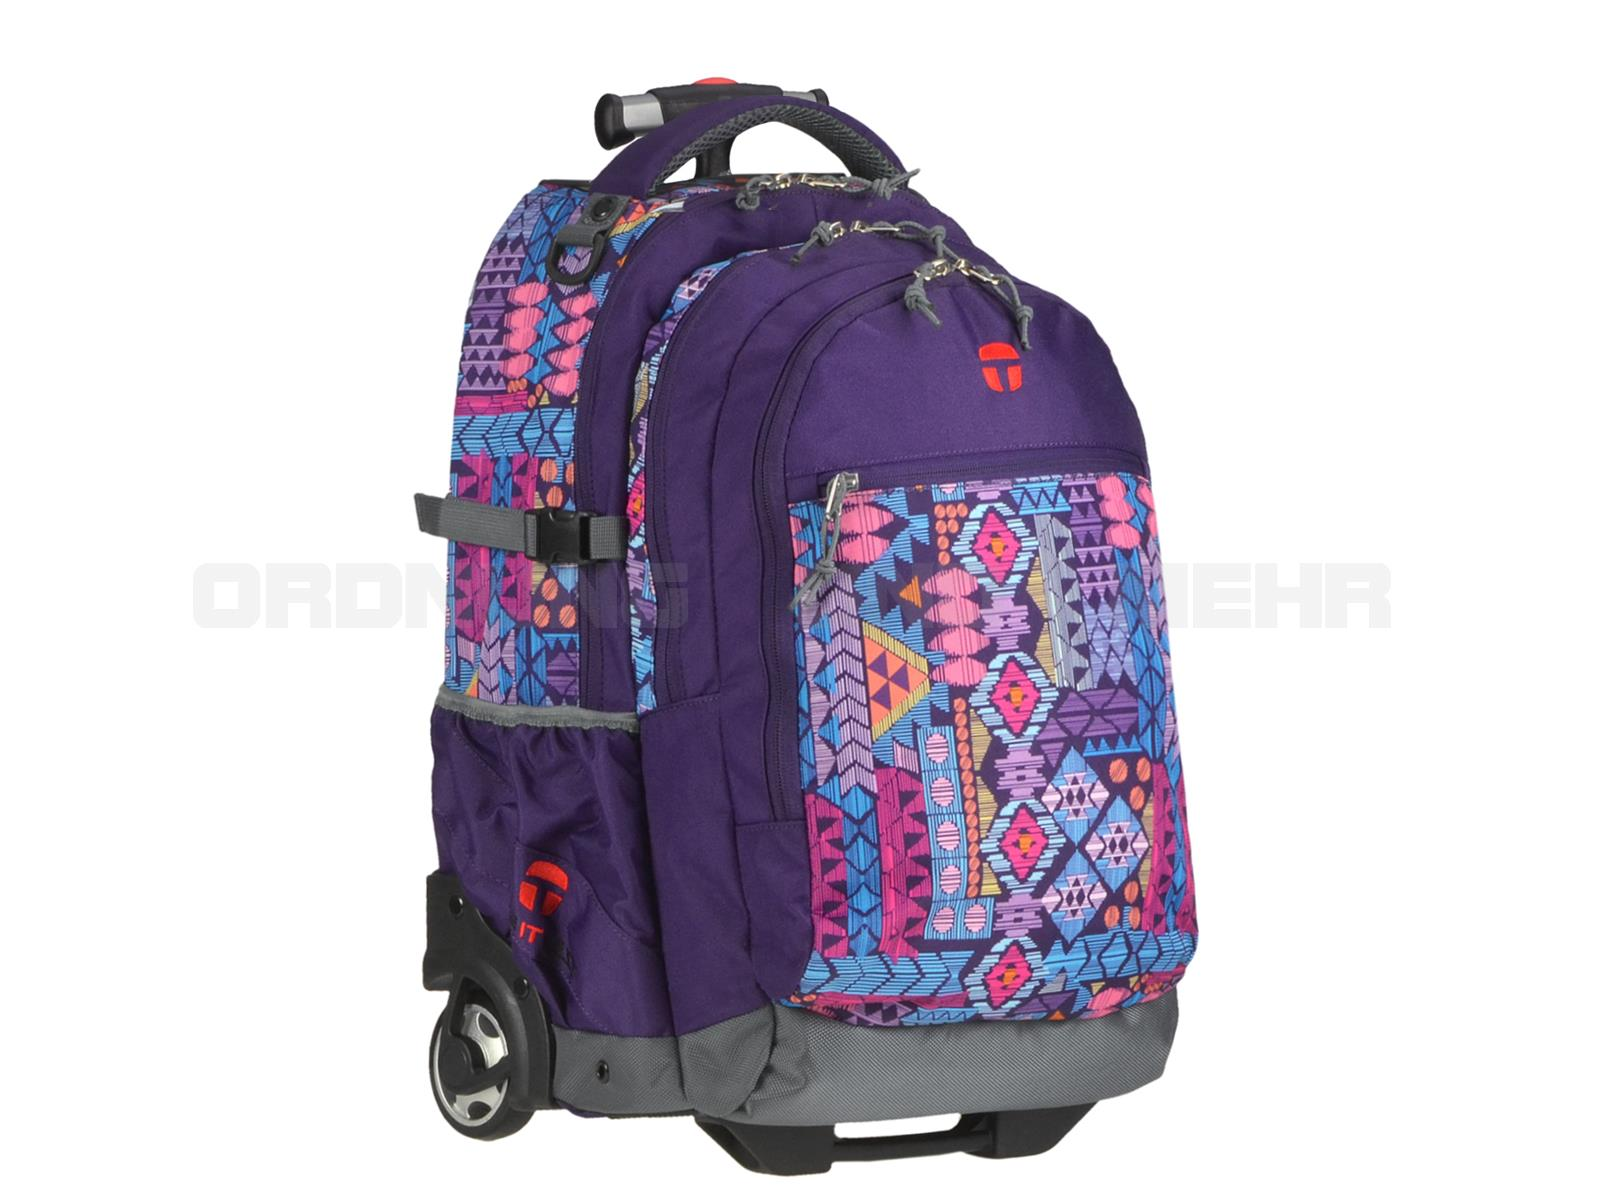 Take it Easy Rucksack Trolley AZTEC in lila bunt 28045-499-059